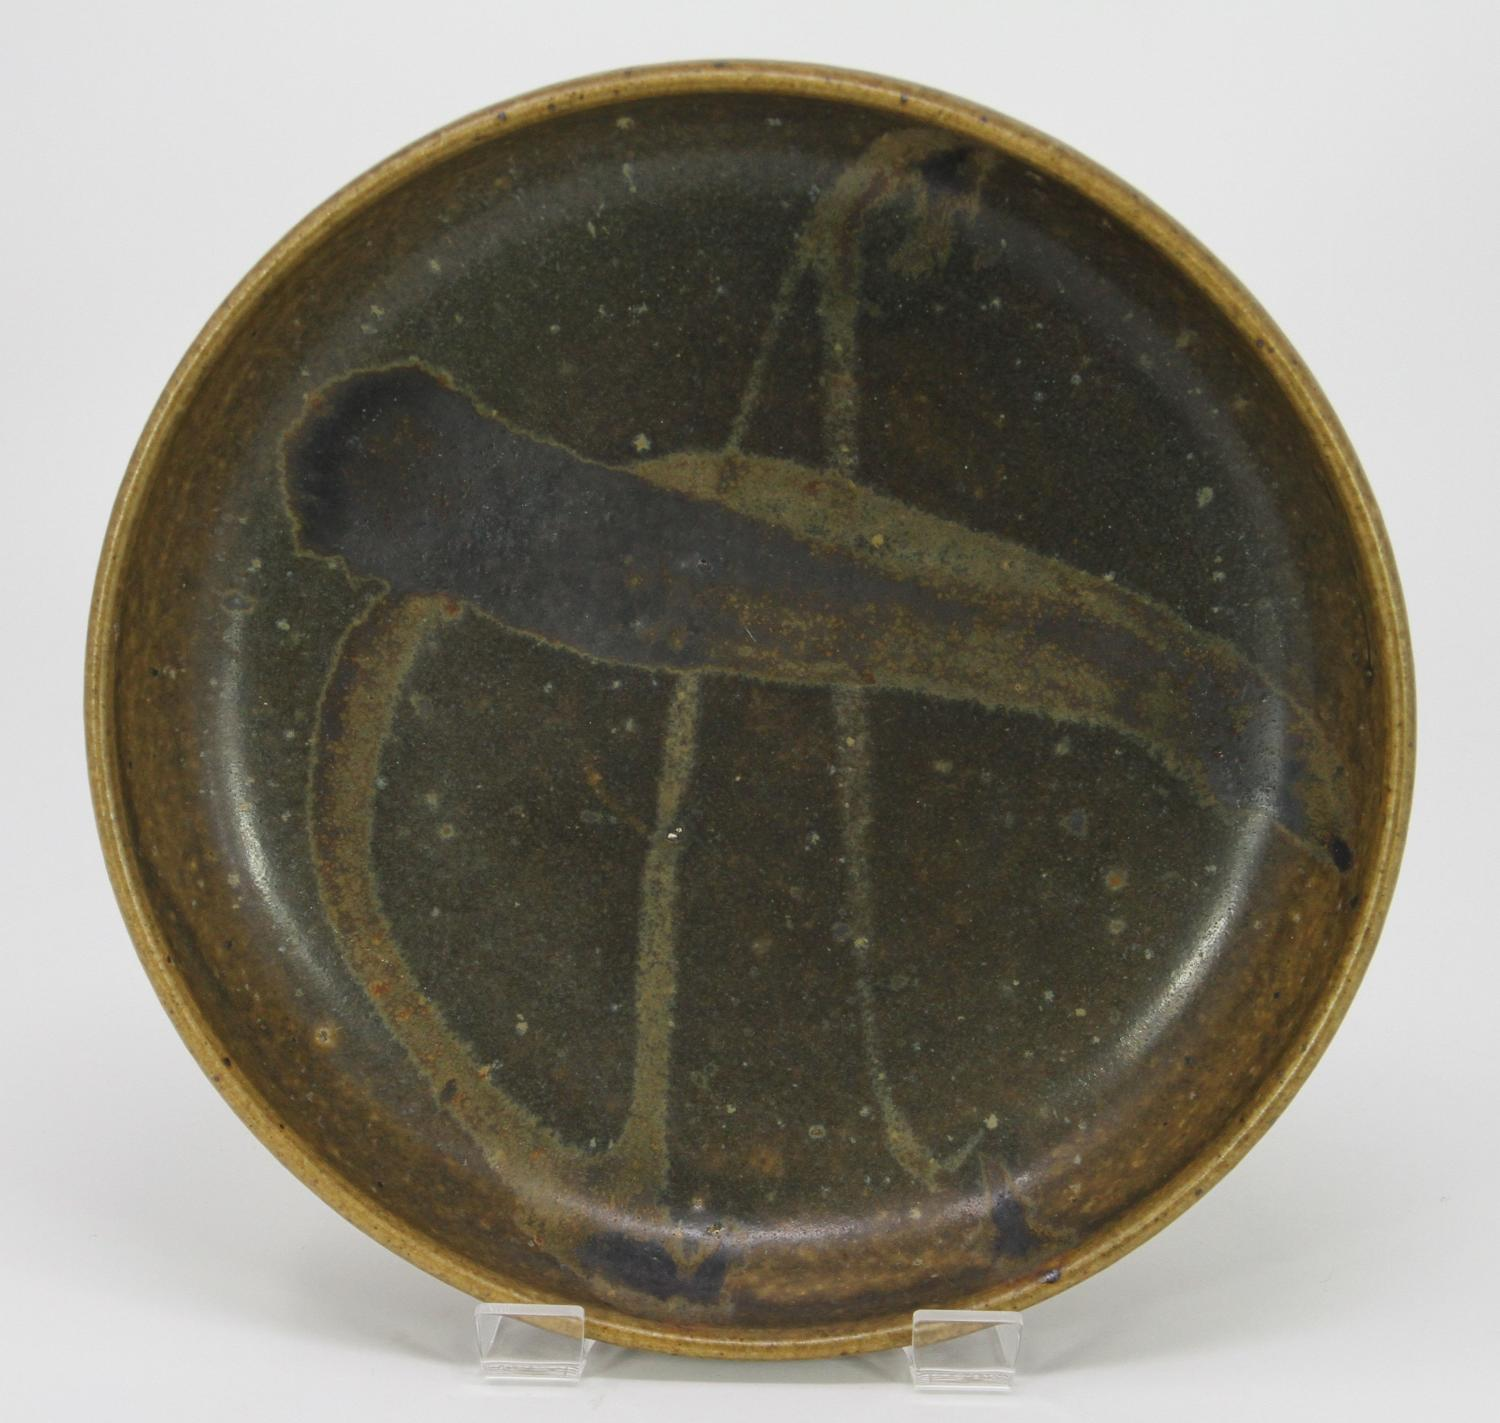 Anne and Peter Stougaard Stoneware dish Denmark